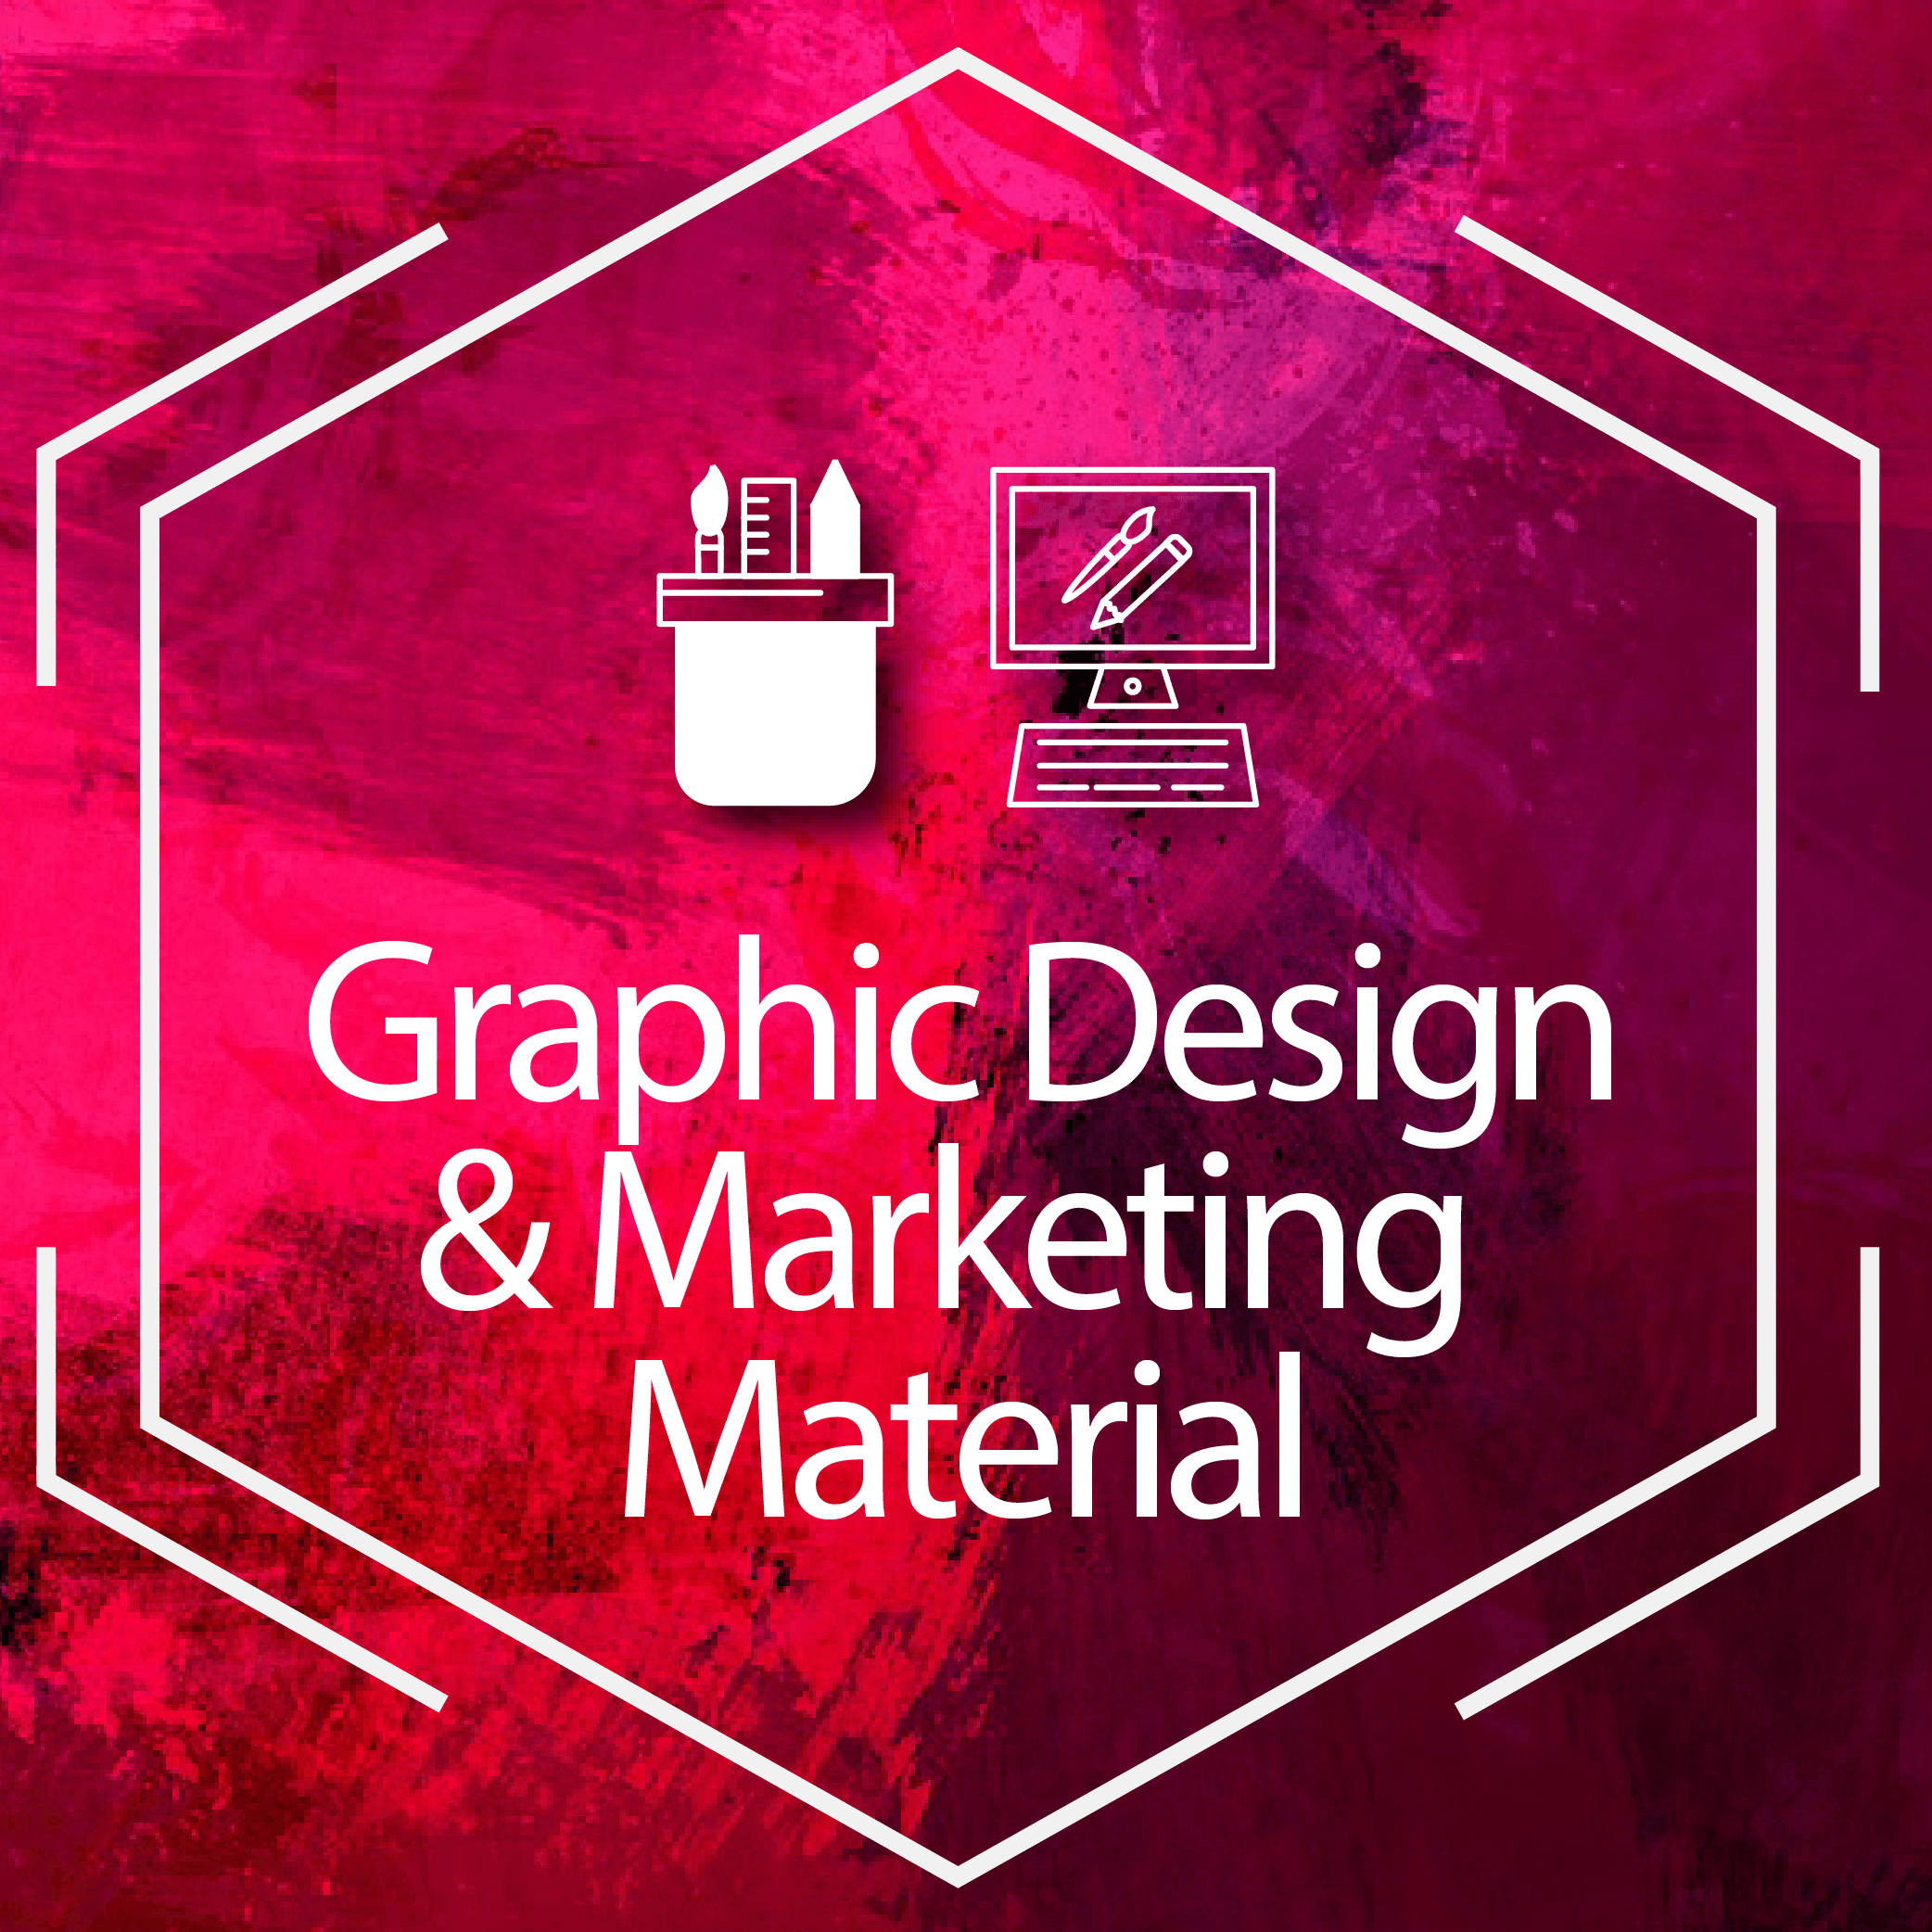 Graphic Design & Marketing Material